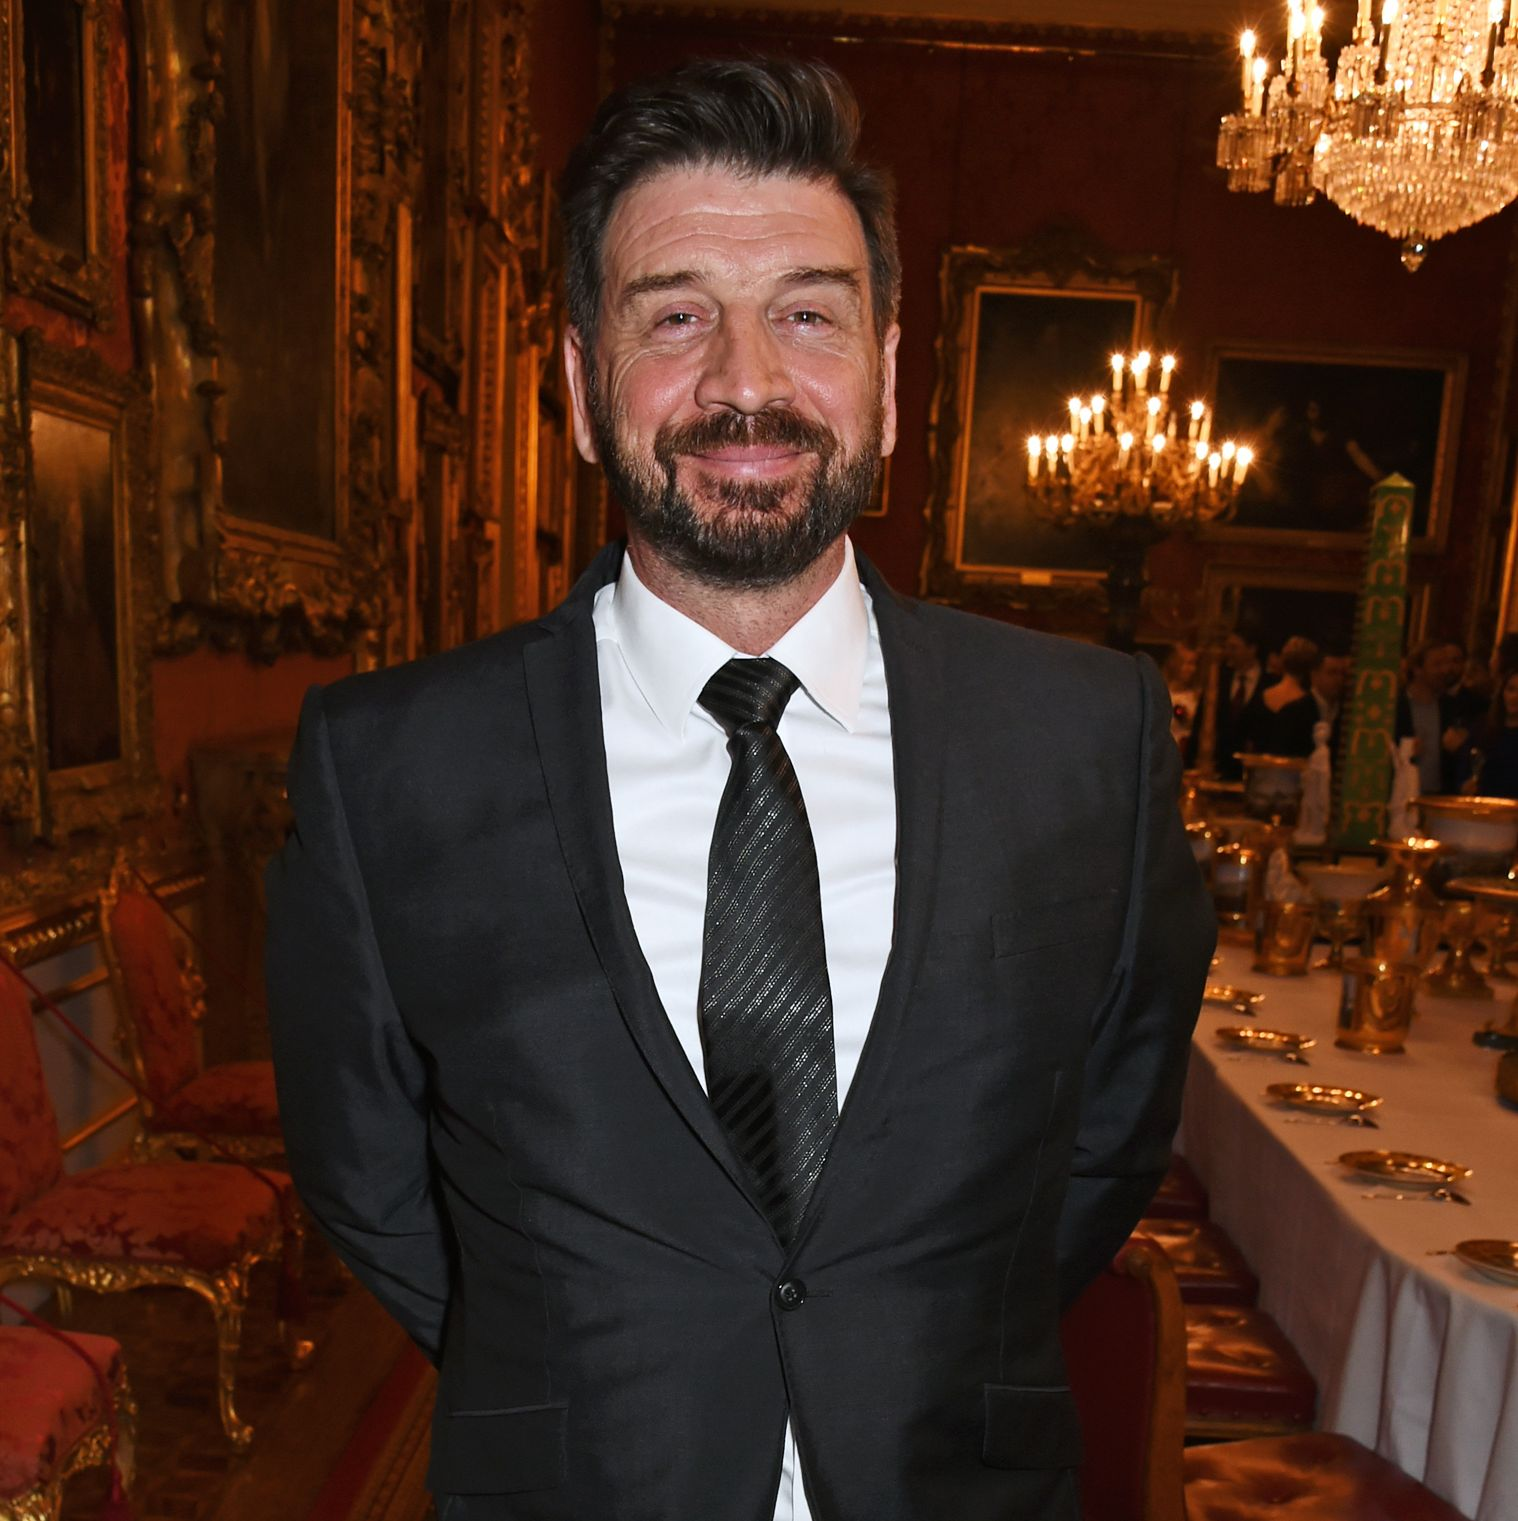 Nick Knowles finds 'dream property' as he downsizes to tiny cottage in the Cotswolds